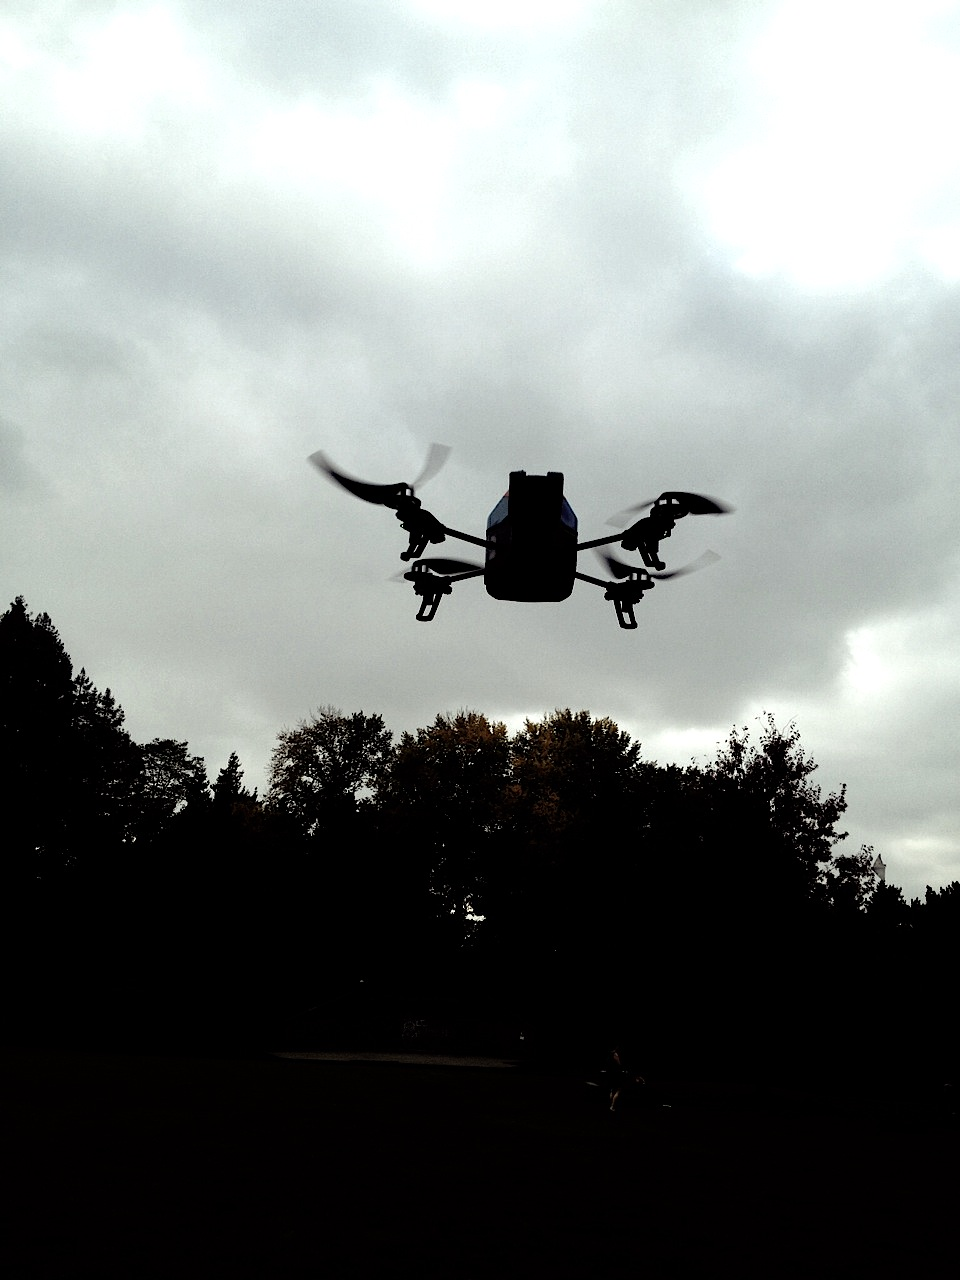 Mr. Drone test drive in the park